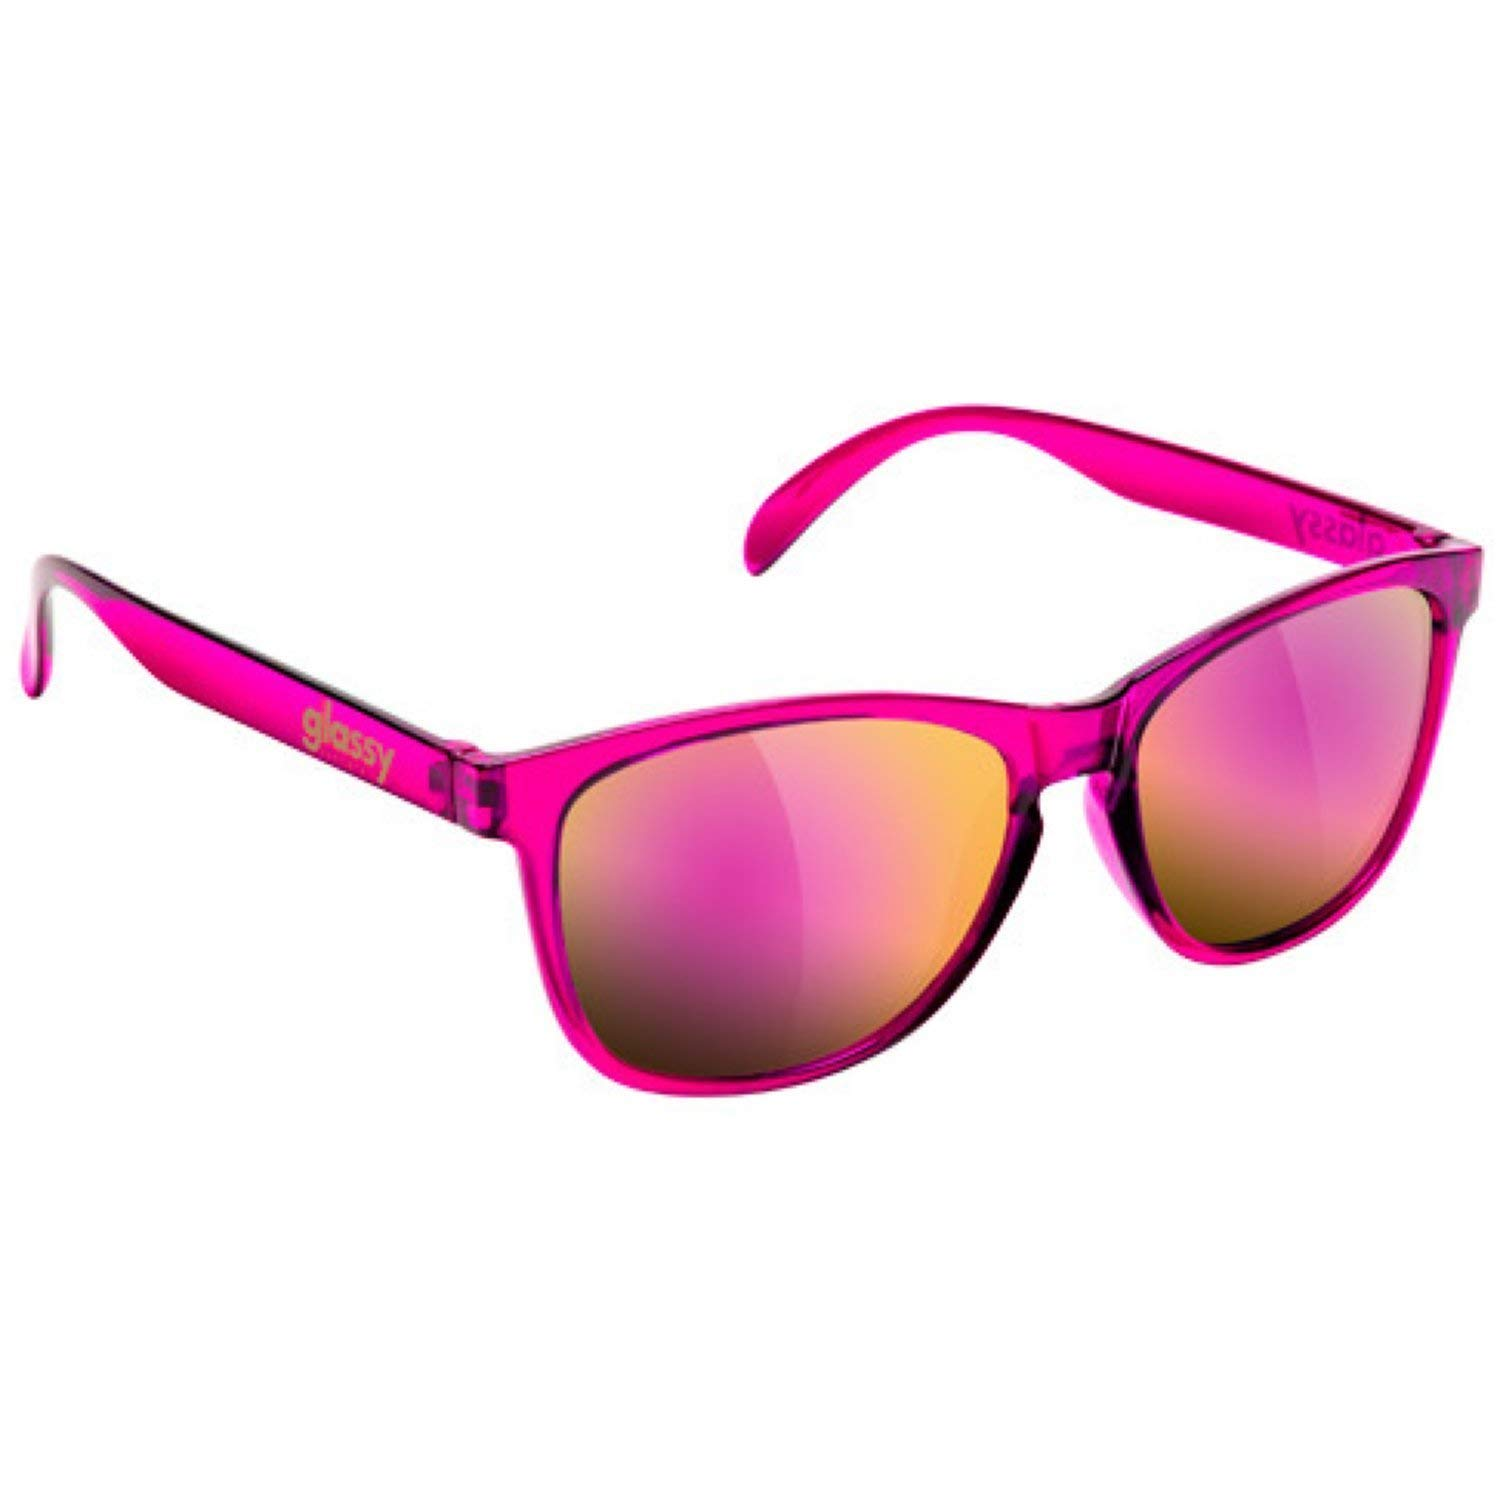 d4fa9266ab Get Quotations · Glassy Sunglasses Glassy Deric Sunglasses - Transparent  Pink Pink Mirror Cancer Hater